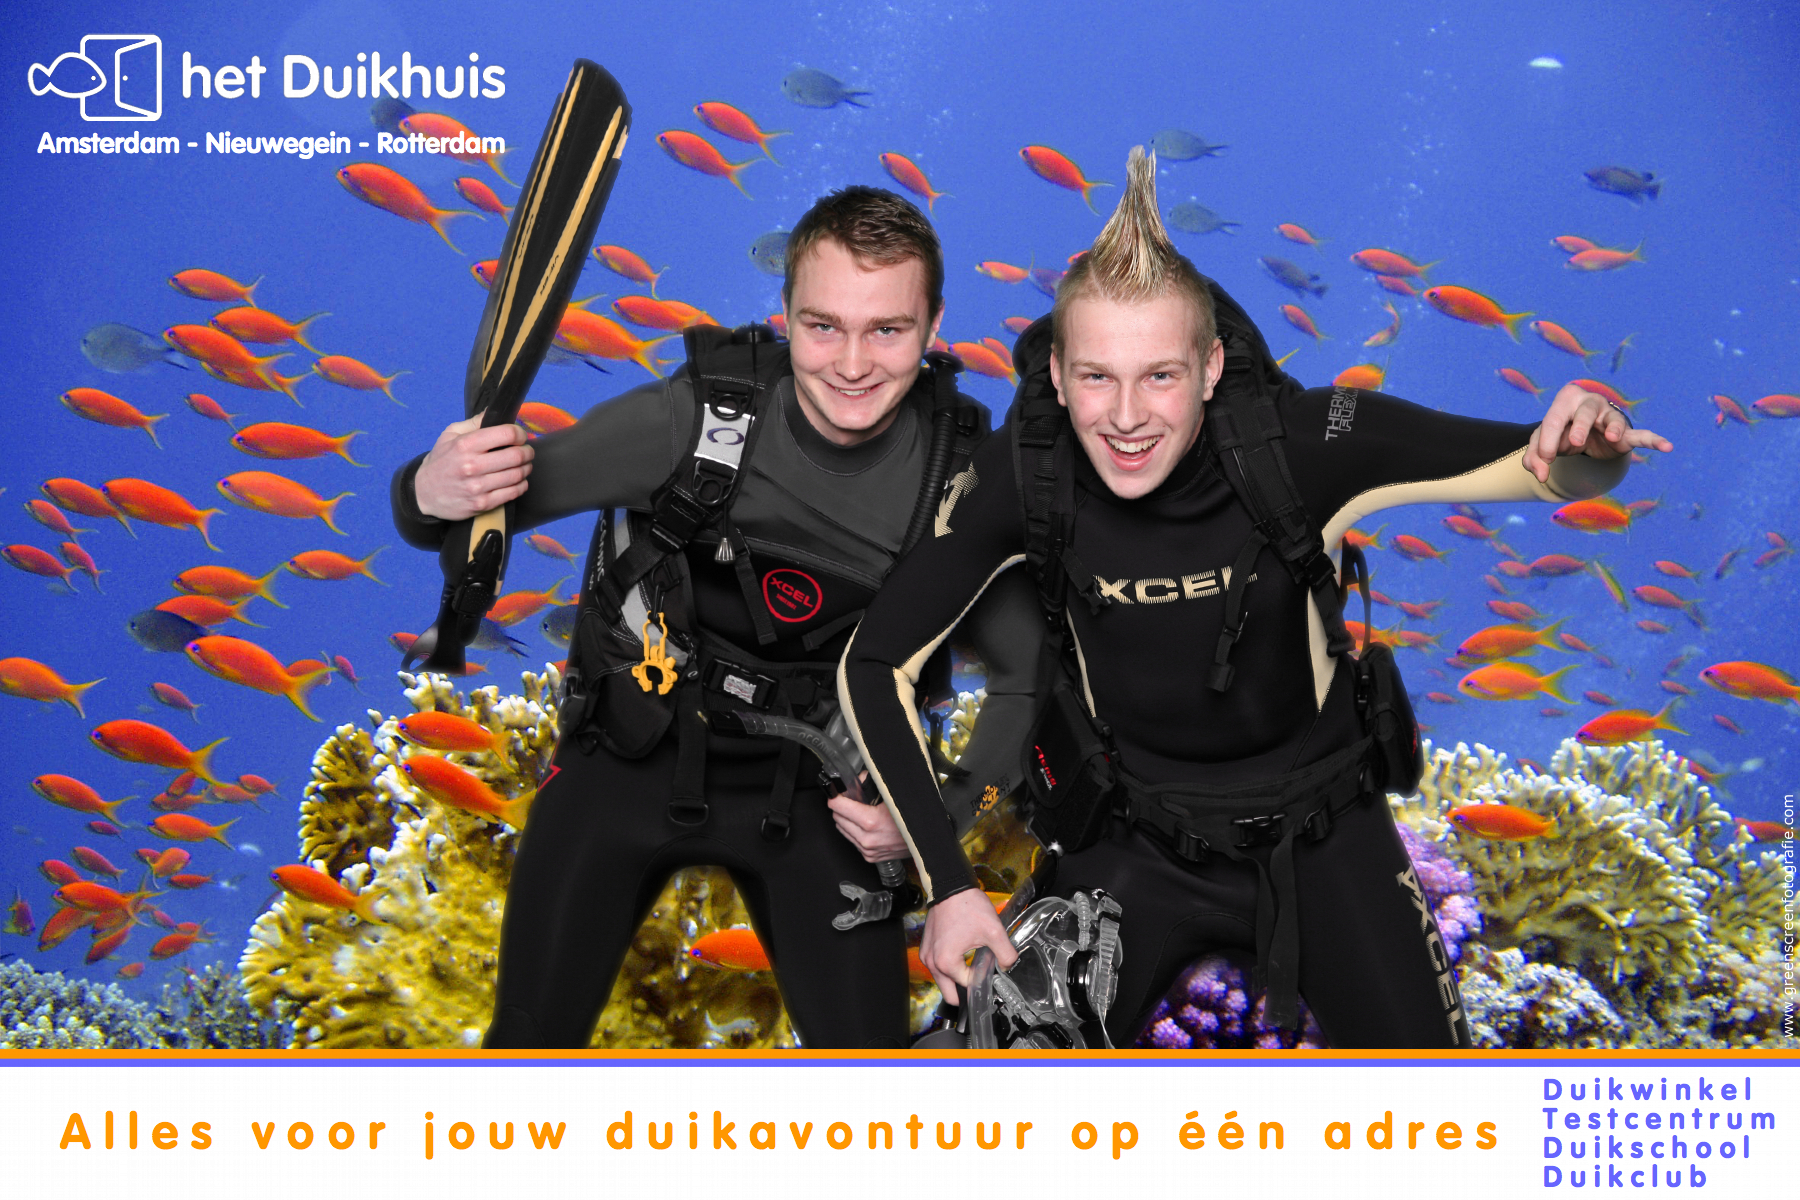 fotofun, marketing, beurs, greenscreen